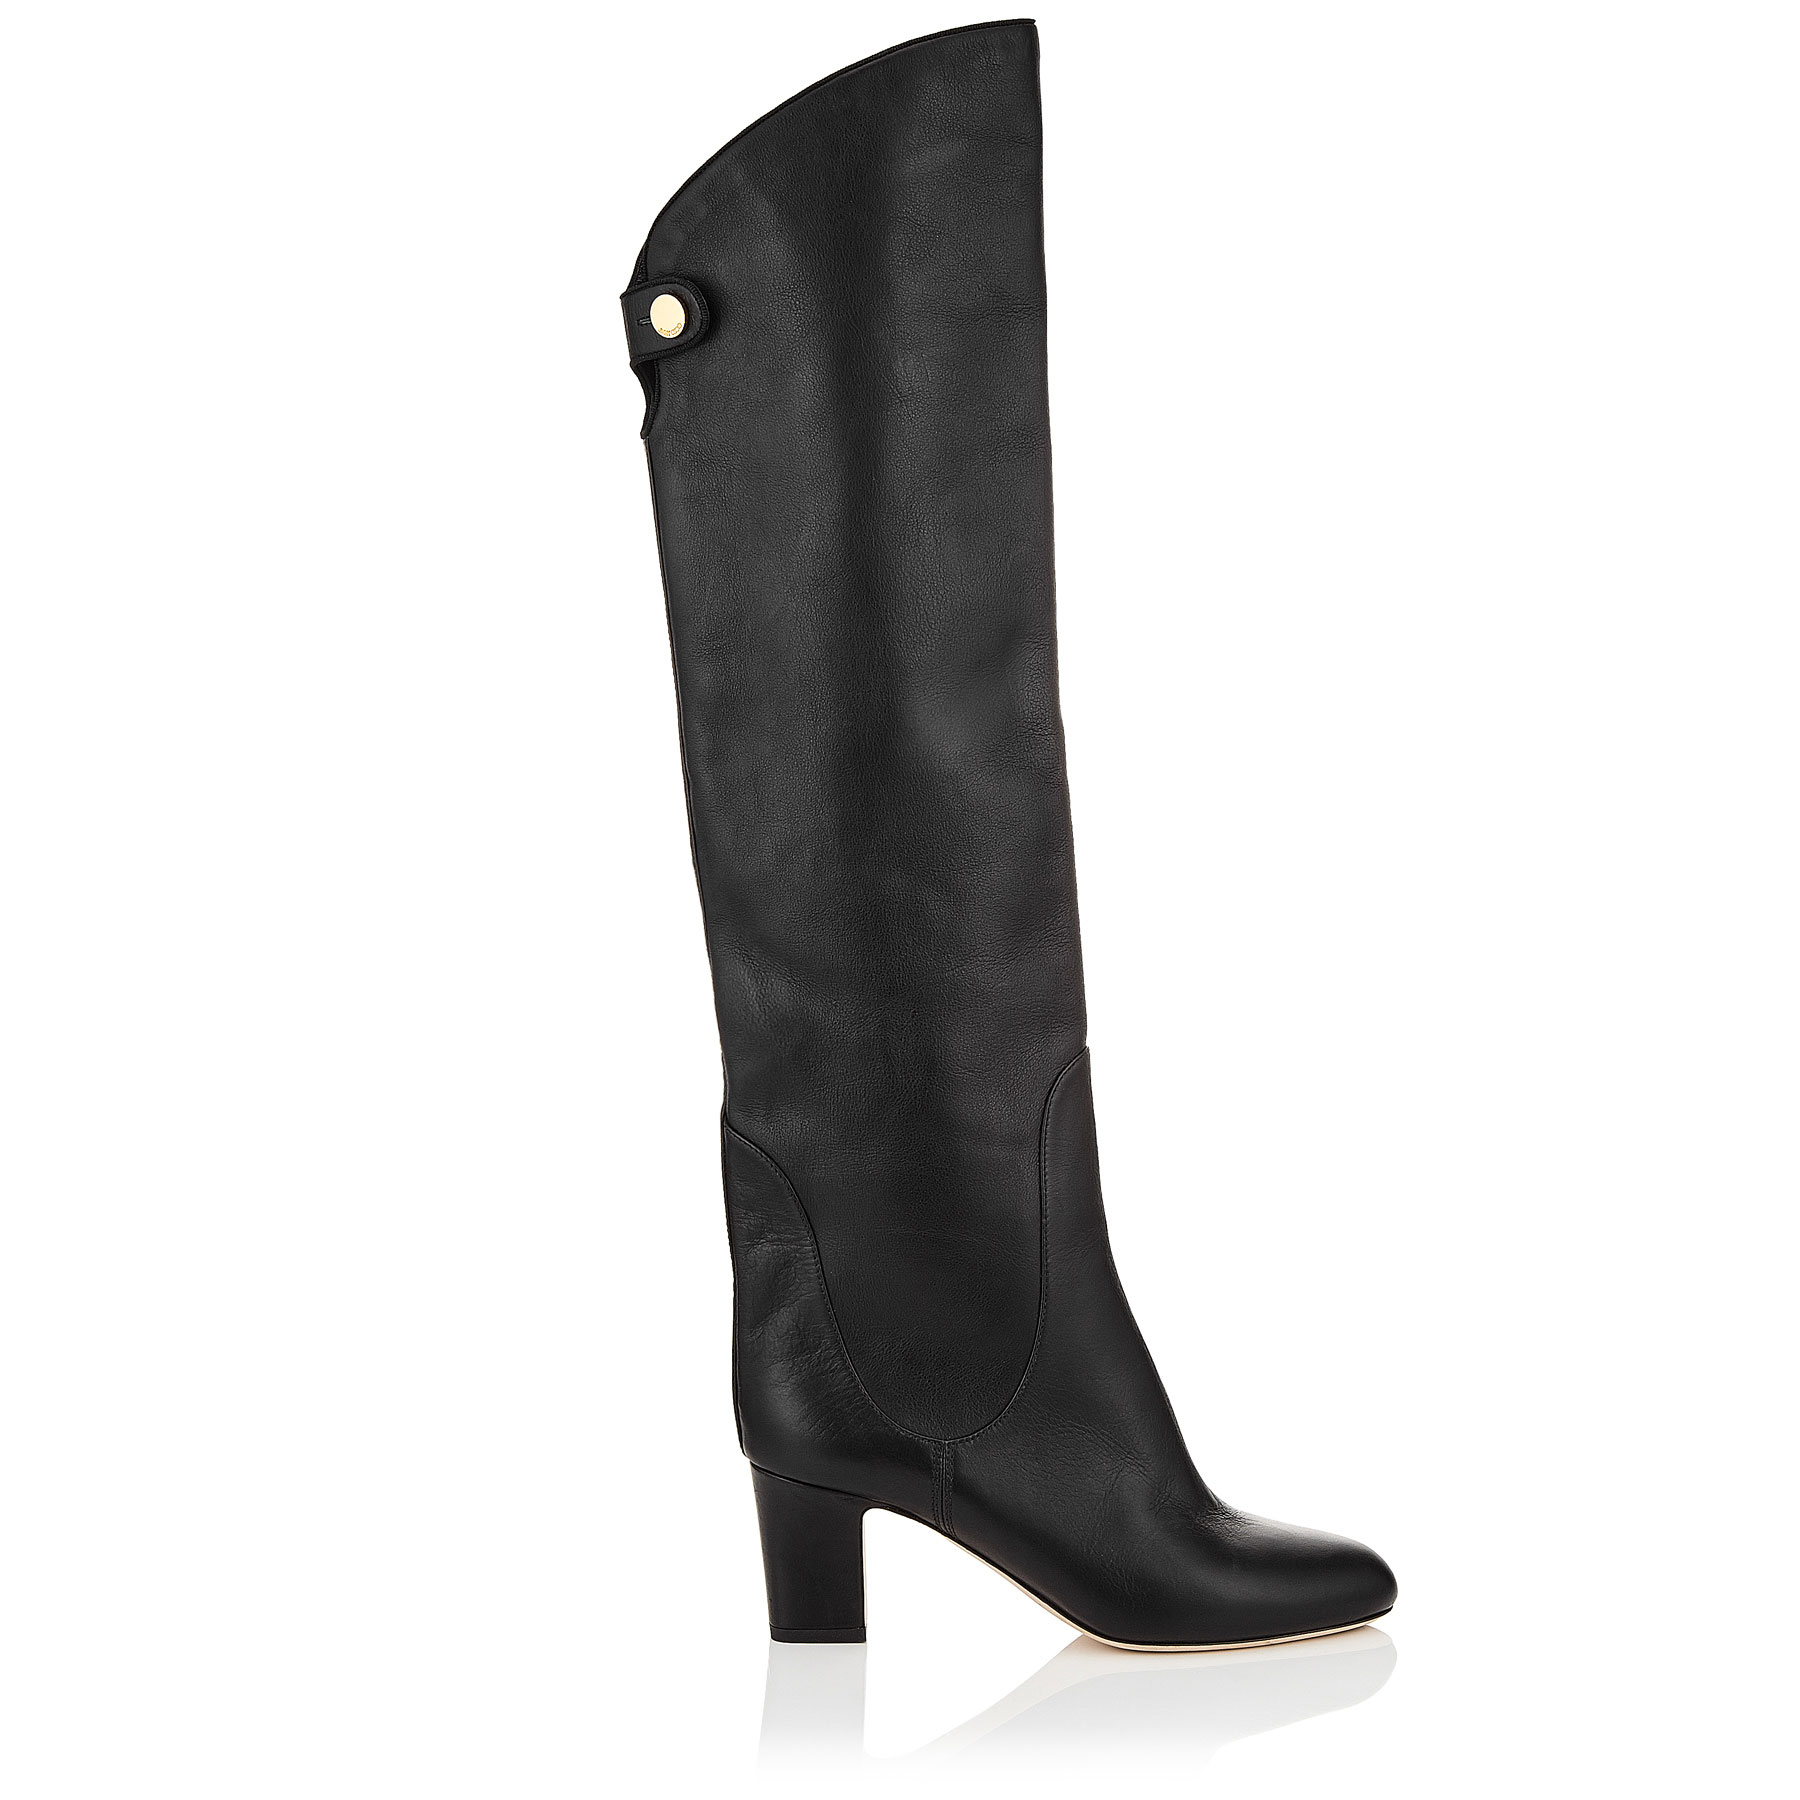 MINERVA 65 Black Smooth Leather Pull On Boots by Jimmy Choo